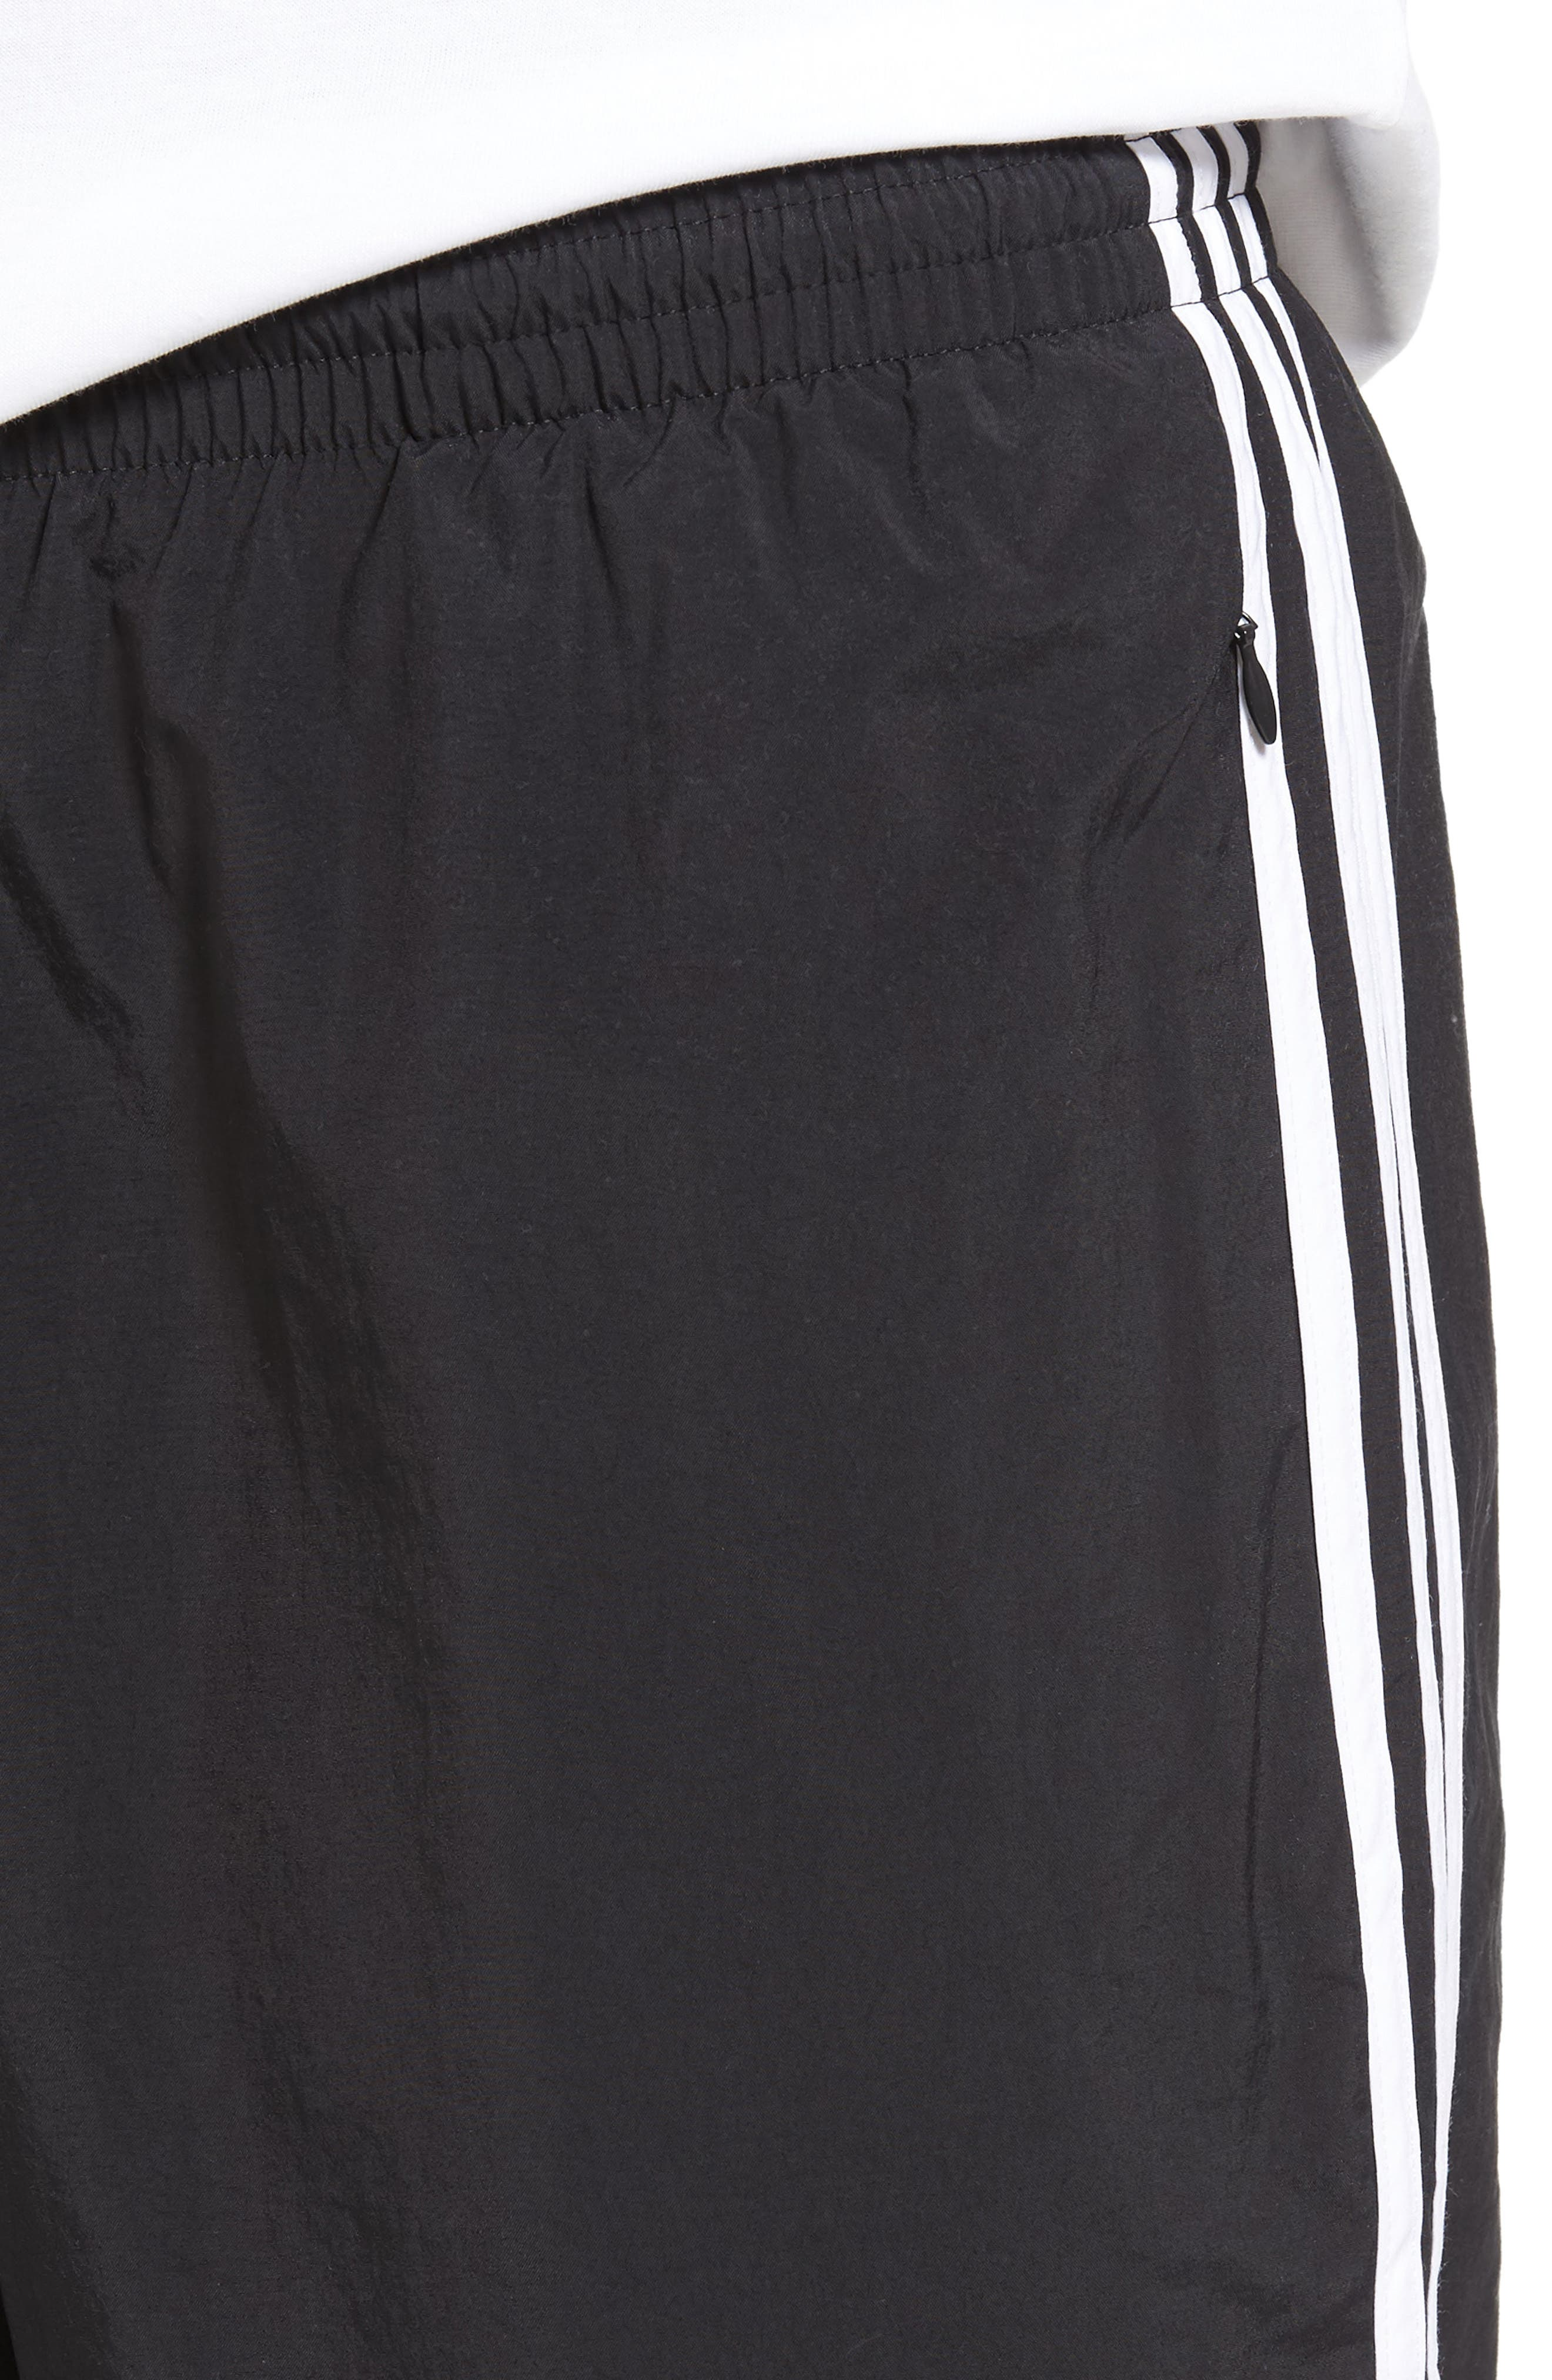 ADIDAS ORIGINALS,                             CLR84 Track Pants,                             Alternate thumbnail 2, color,                             001